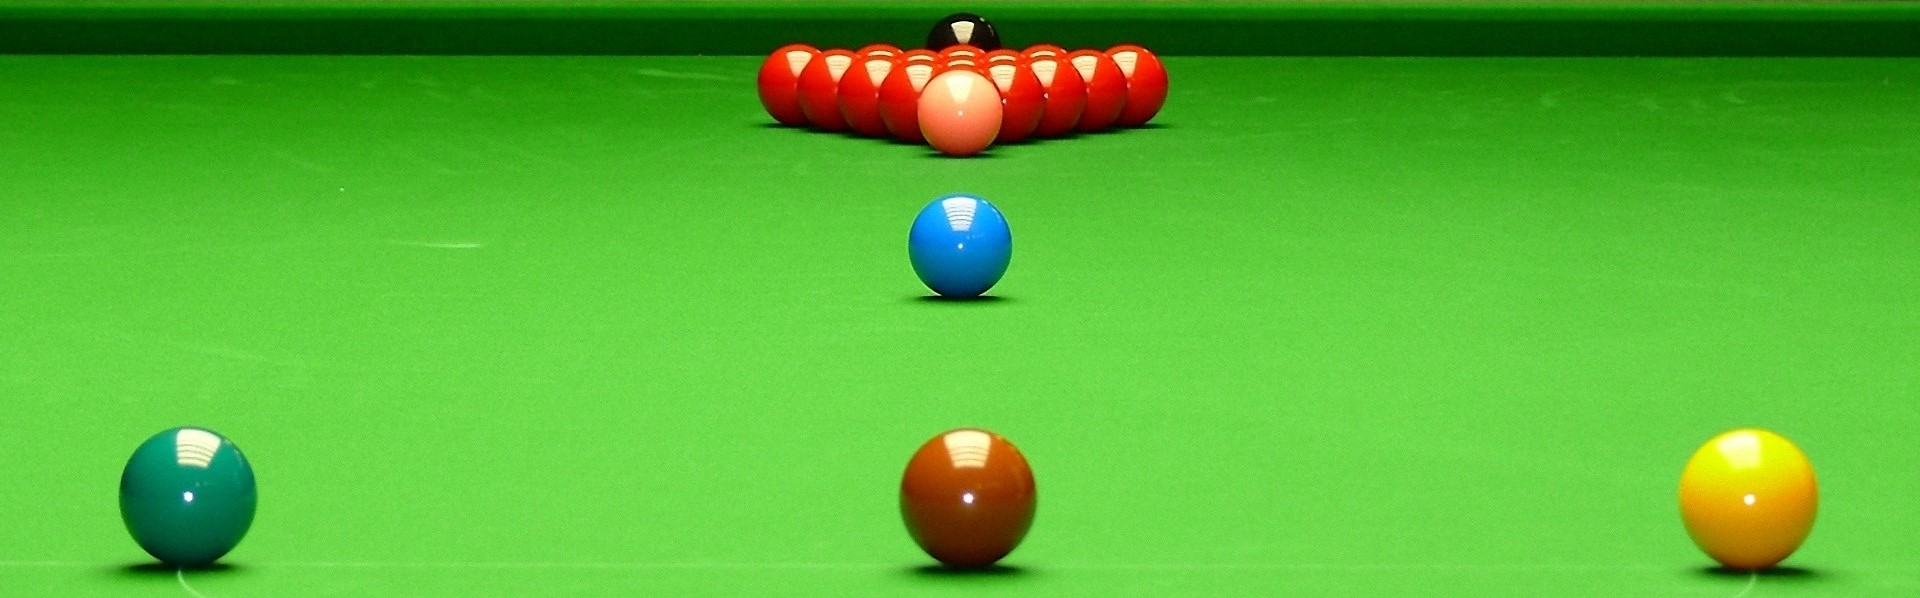 snooker-ready_91881-1920x1200